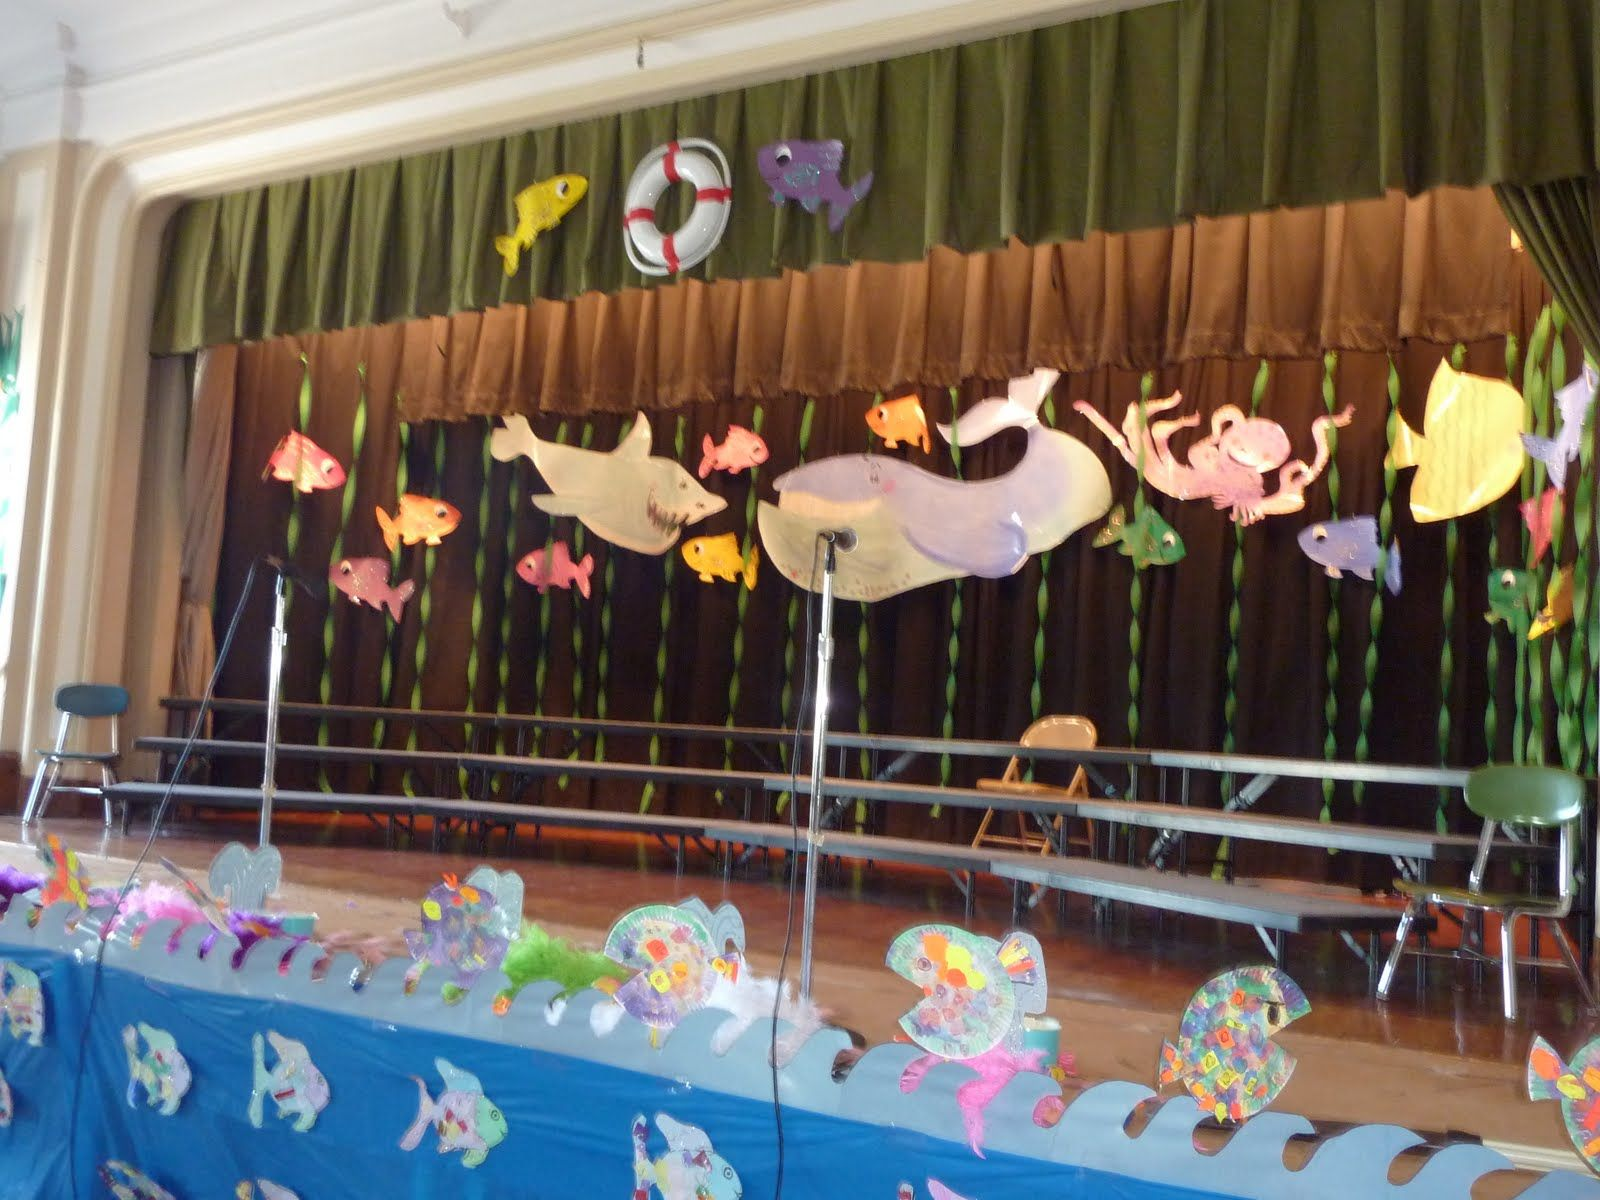 Kindergarten graduation decorations macallister and - Kindergarten graduation decorations ...